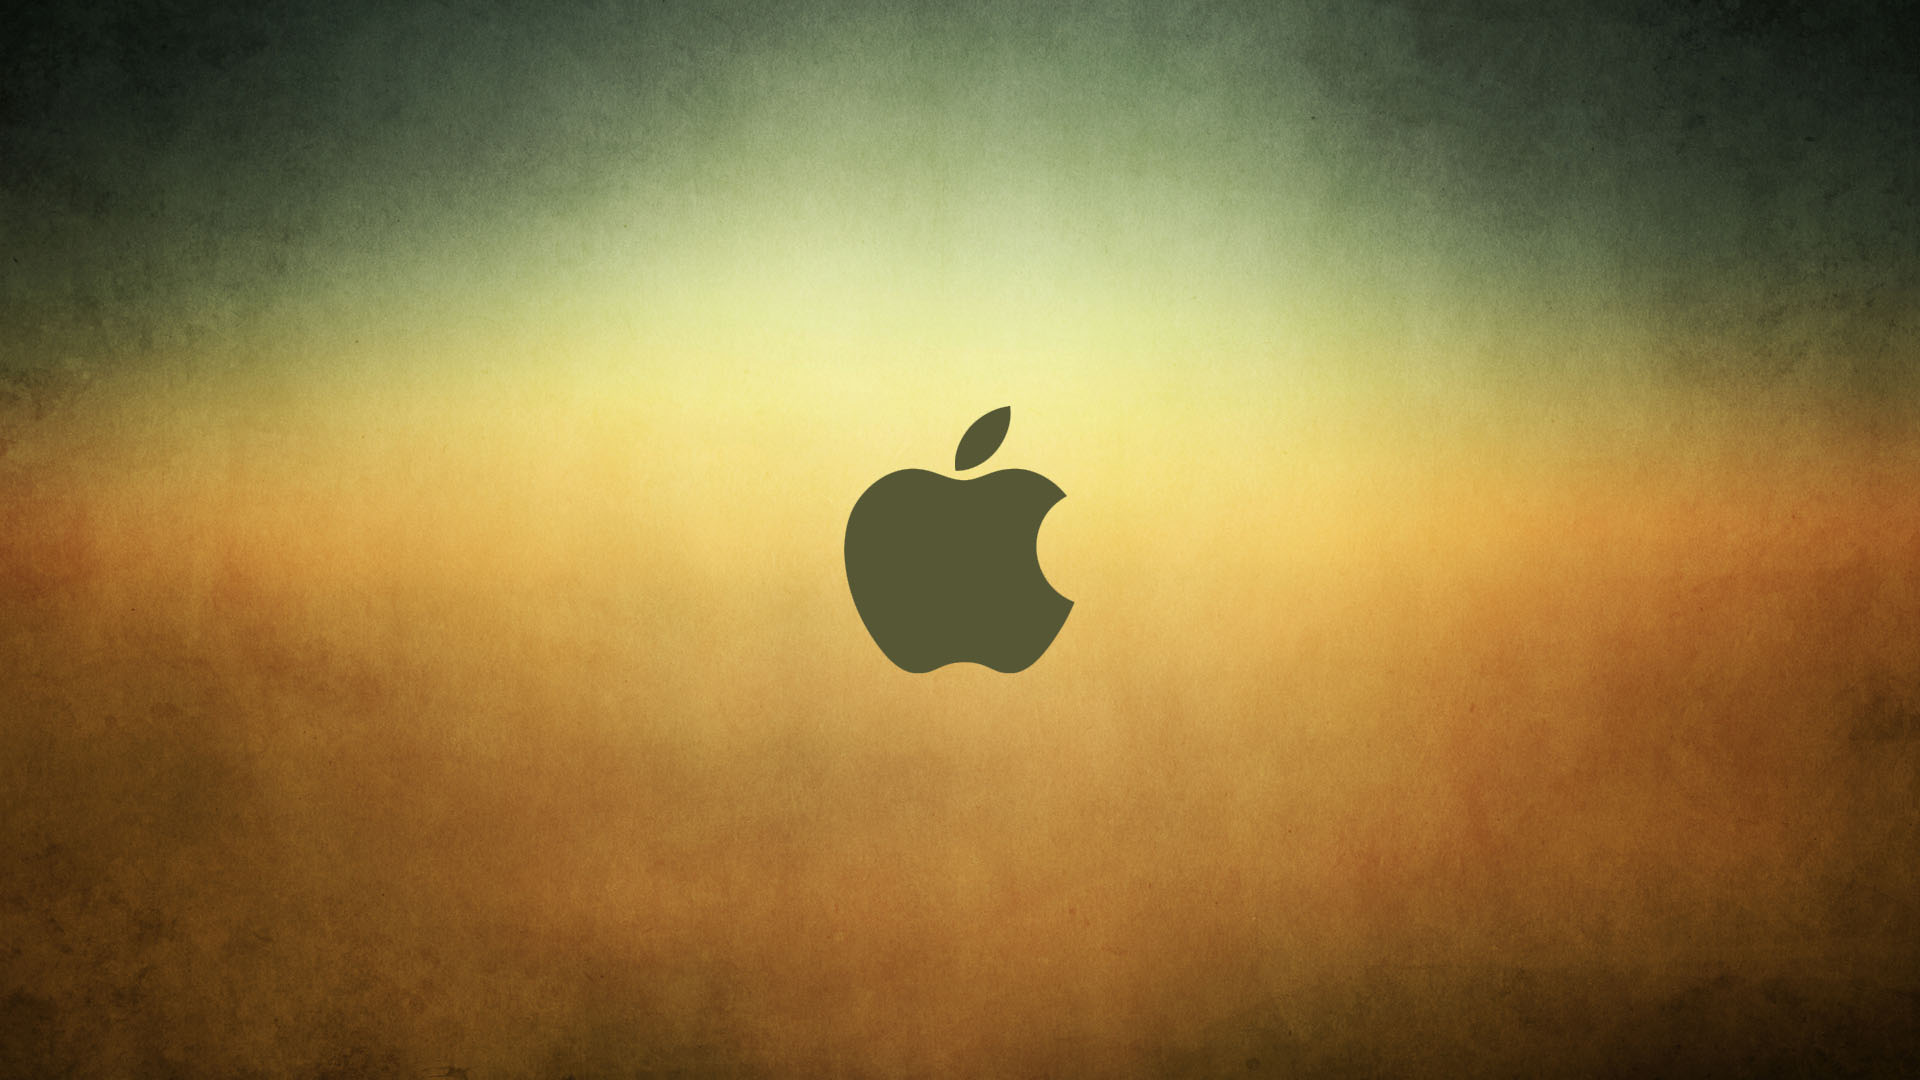 Mac Os X 3d Hd Abstract Wallpapers Wallpaper